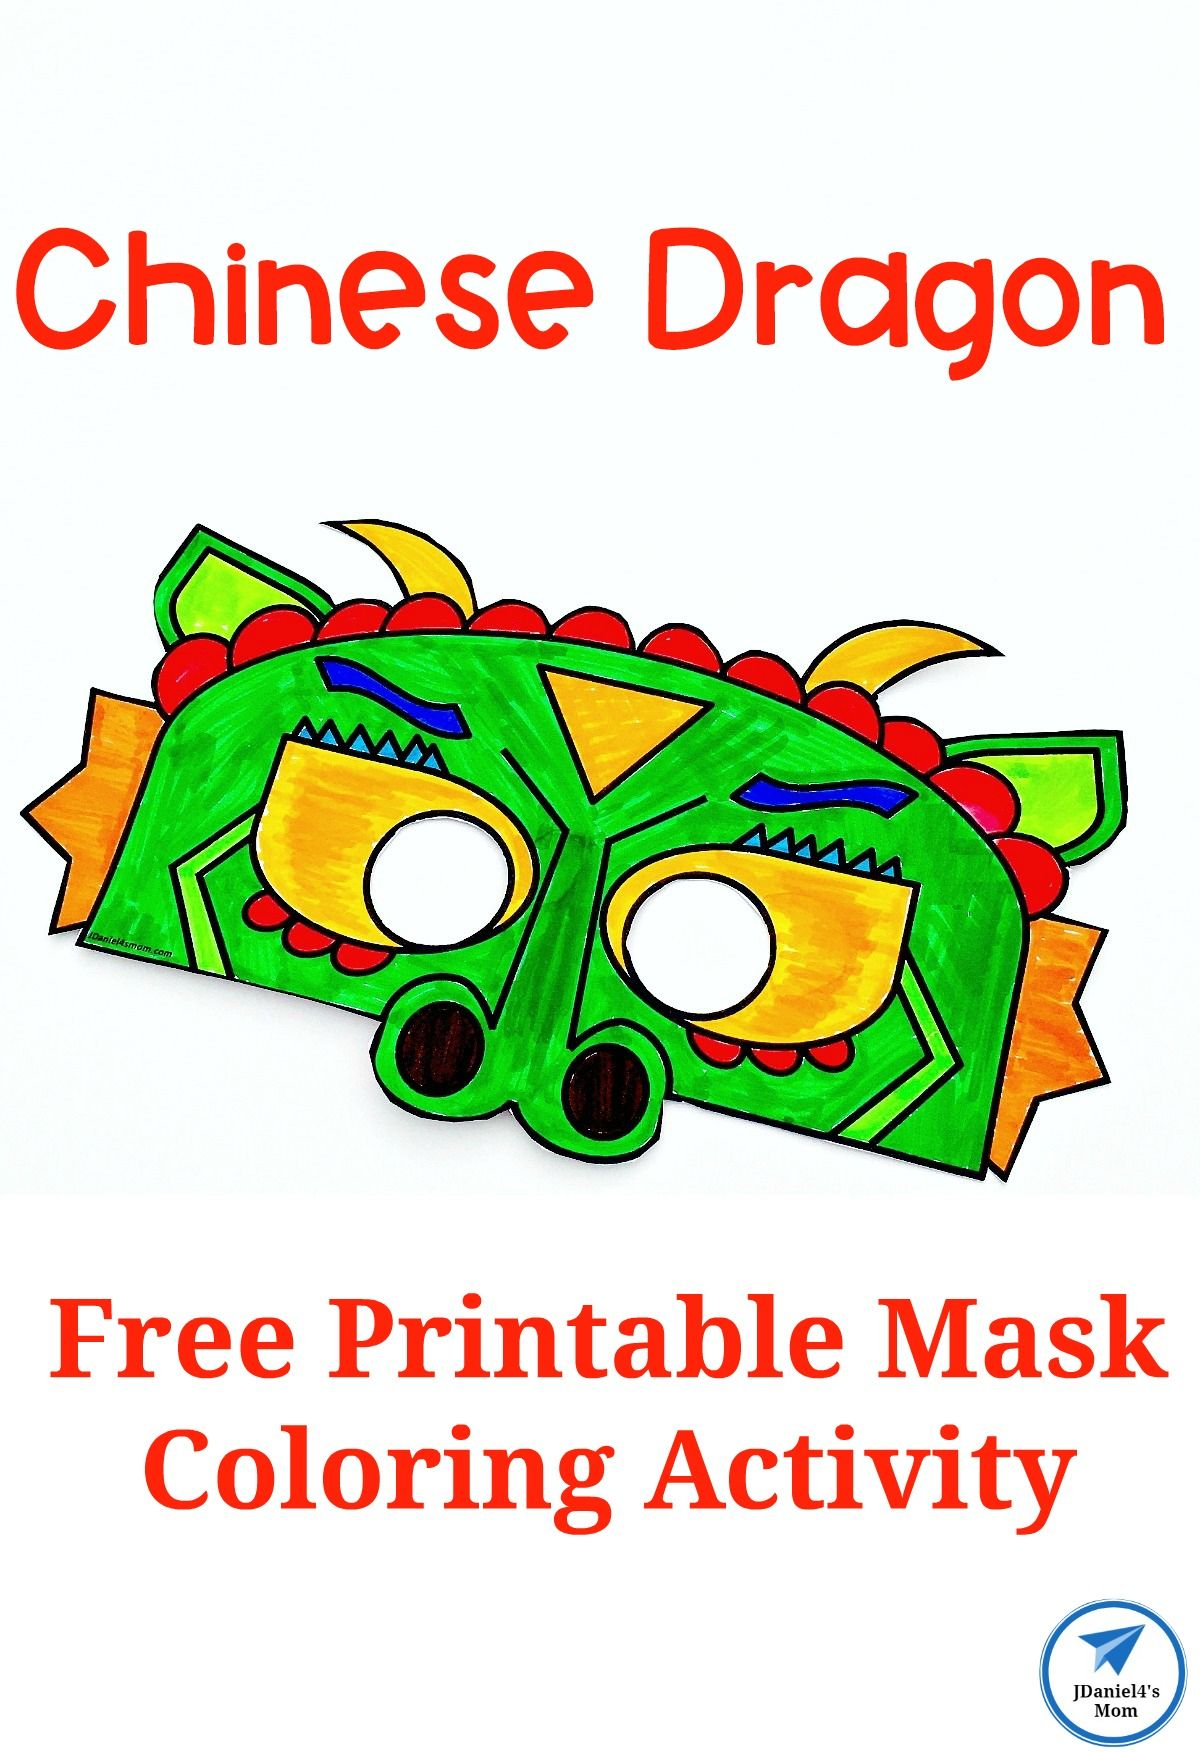 Chinese Dragon Mask Printable Coloring Activity Jdaniel4s Mom In 2021 Color Activities Creative Kids Crafts Chinese New Year Crafts [ 1752 x 1200 Pixel ]